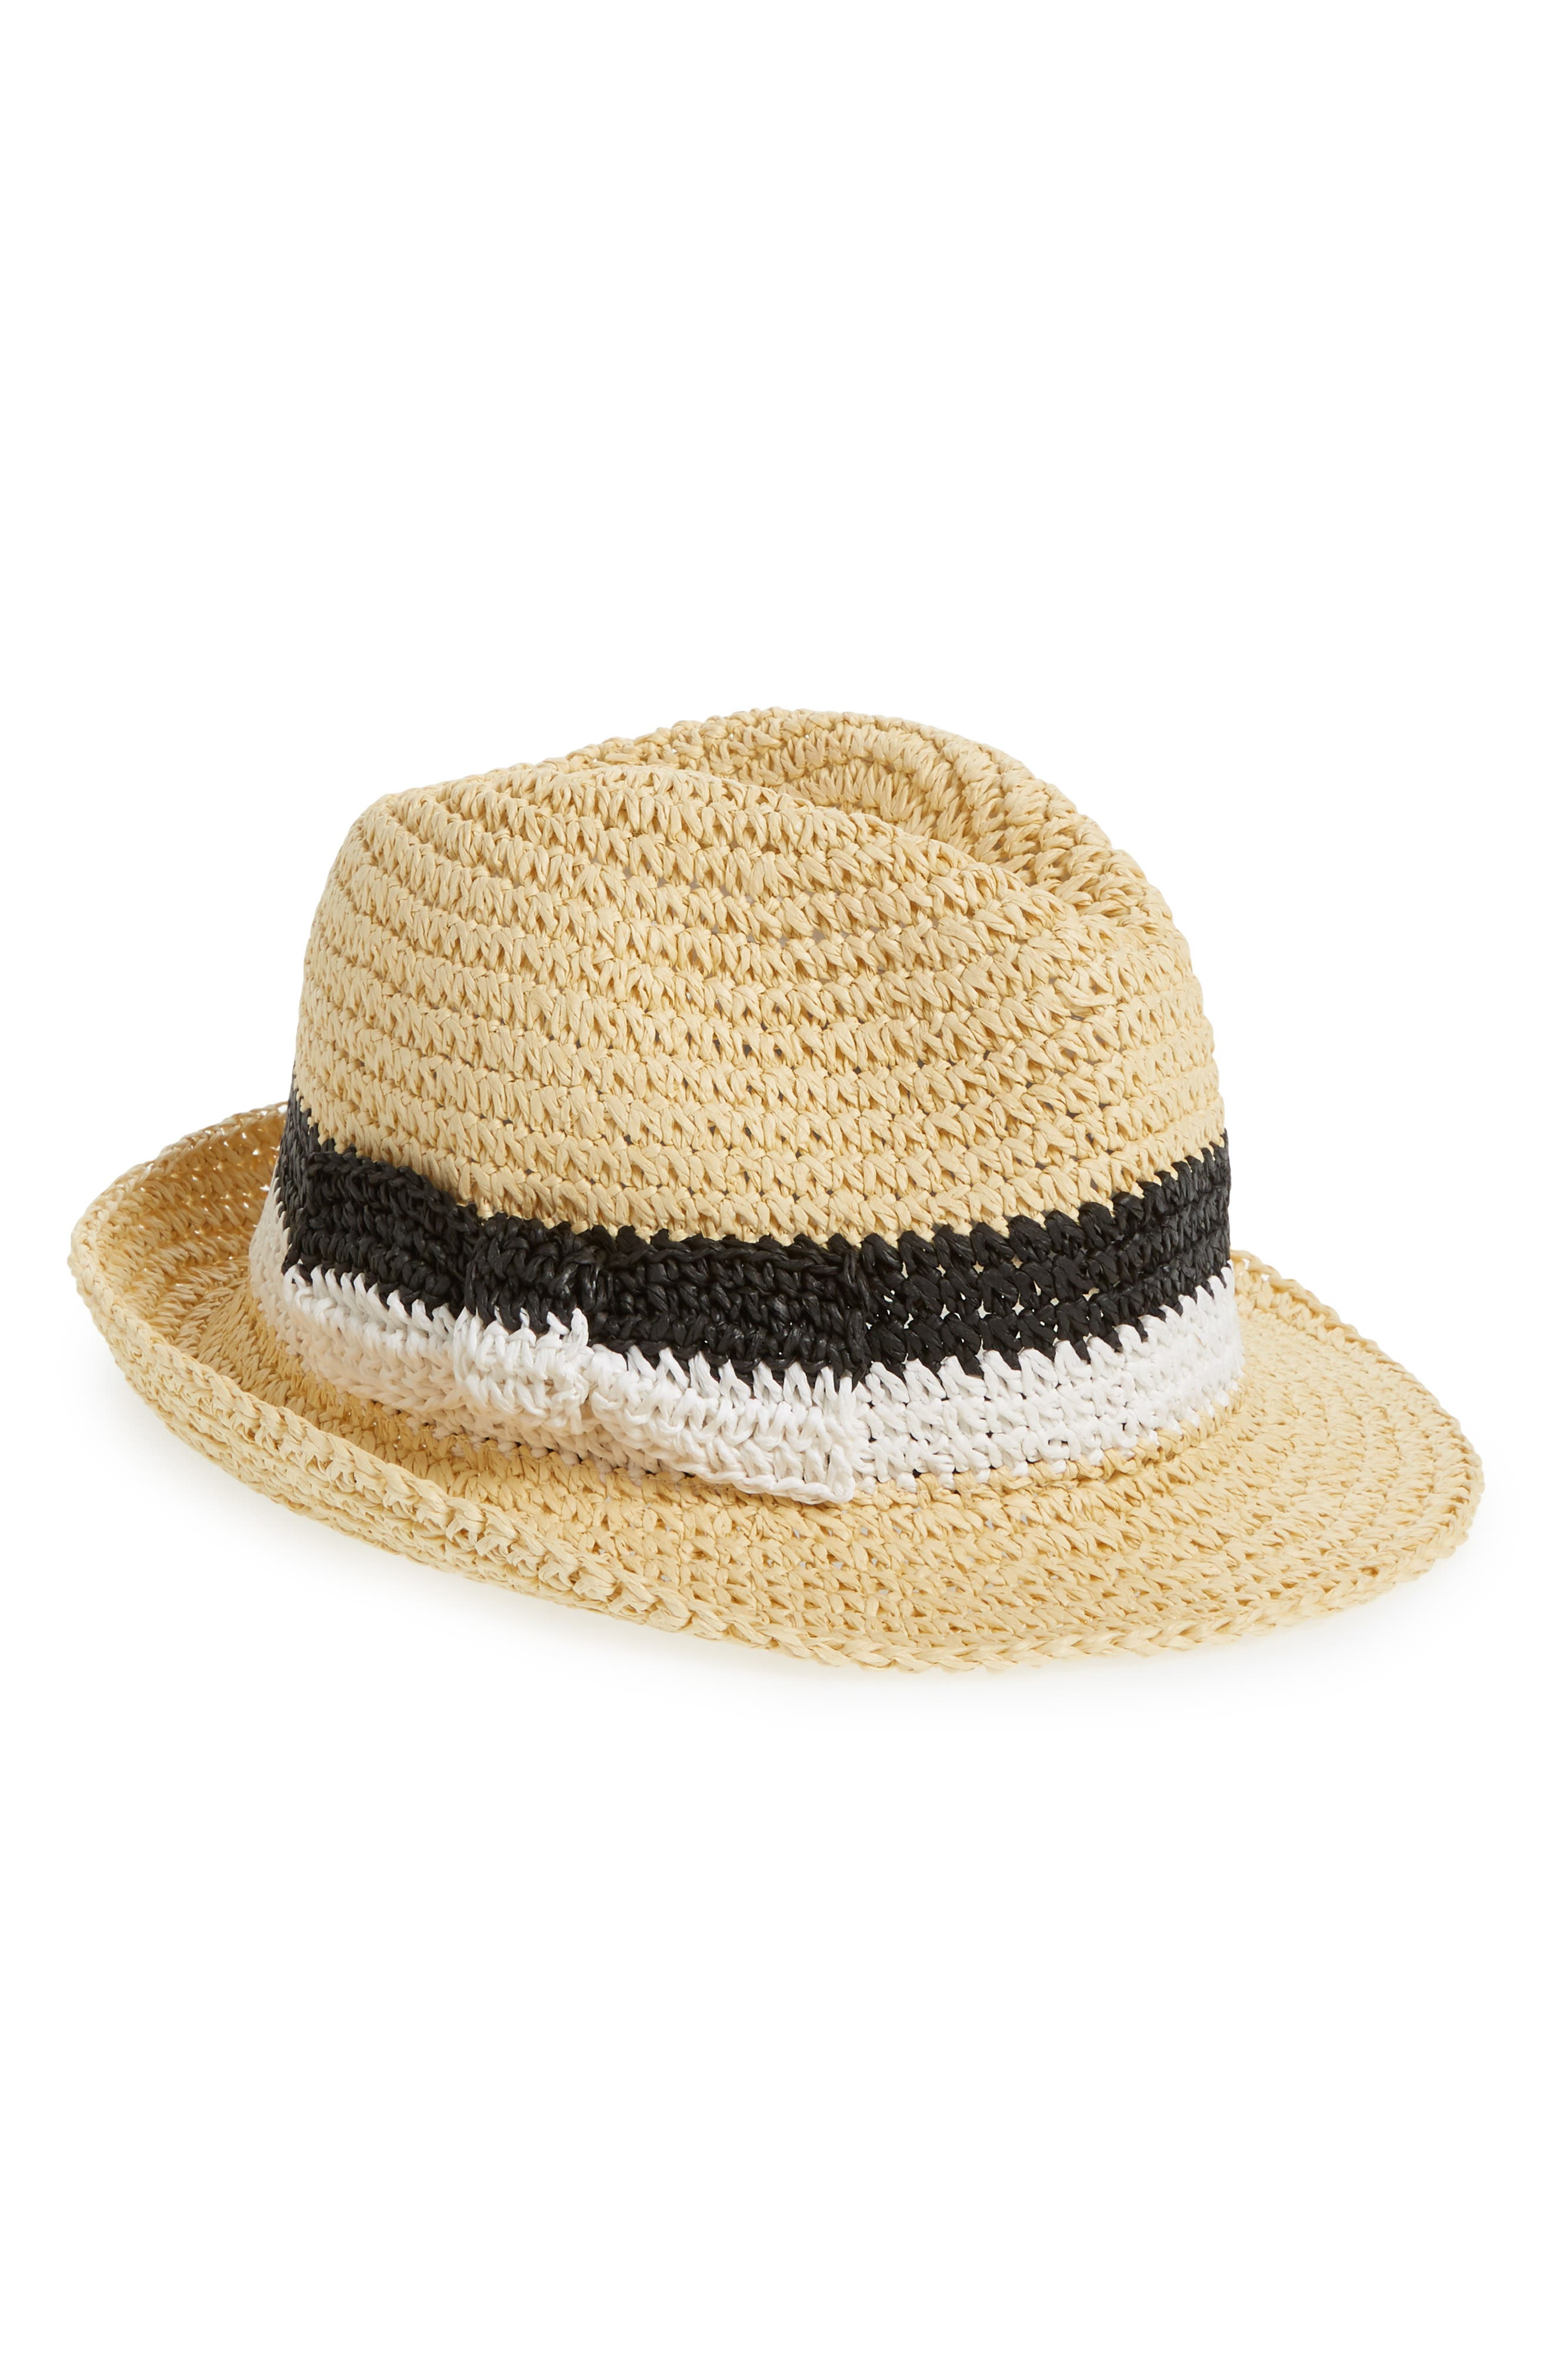 kate spade stripe bow straw trilby,                             Main thumbnail 1, color,                             200